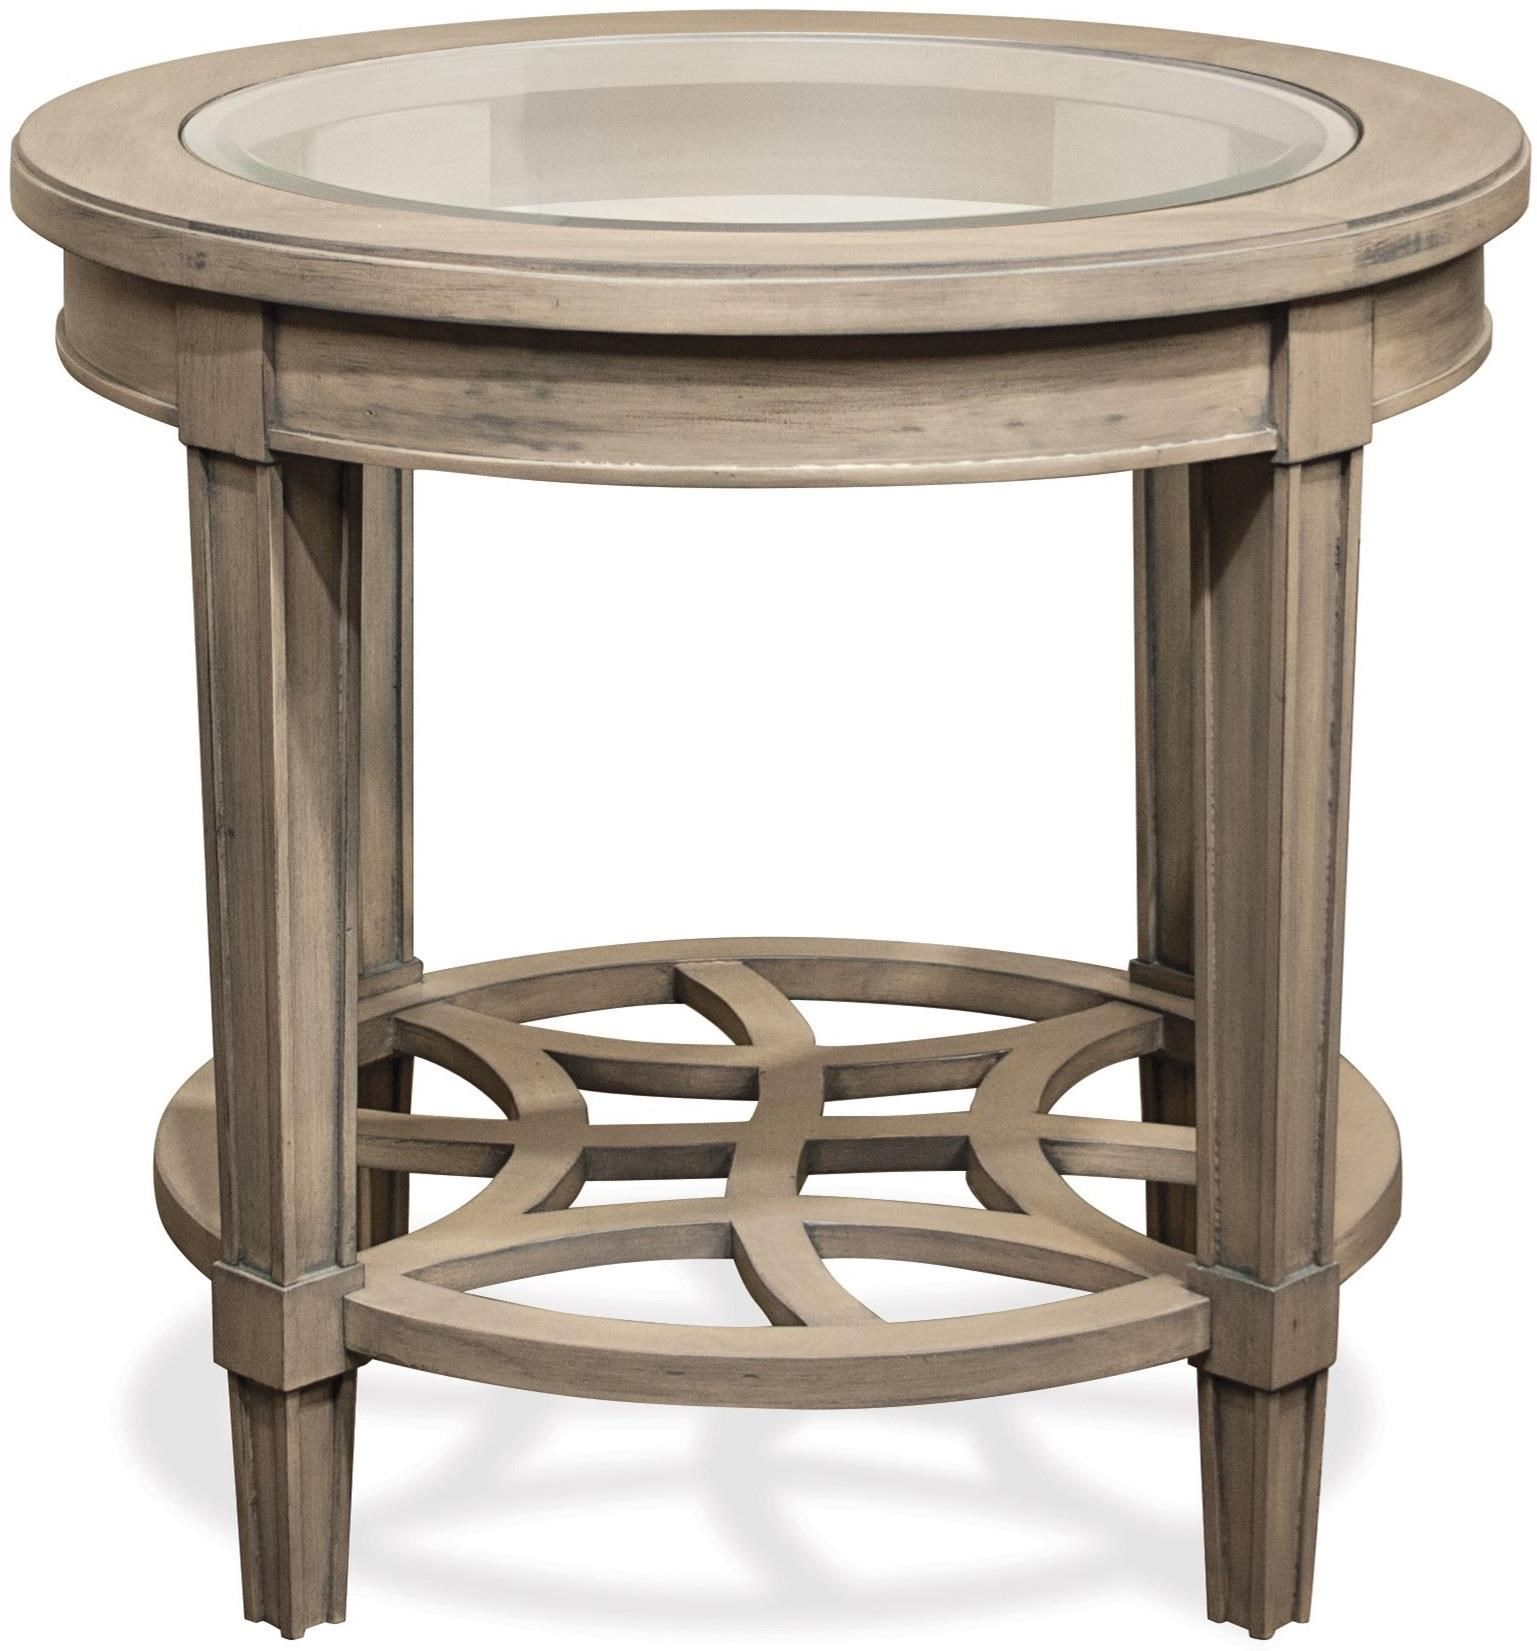 Riverside Furniture Parkdale Round End Table - Item Number: 15508